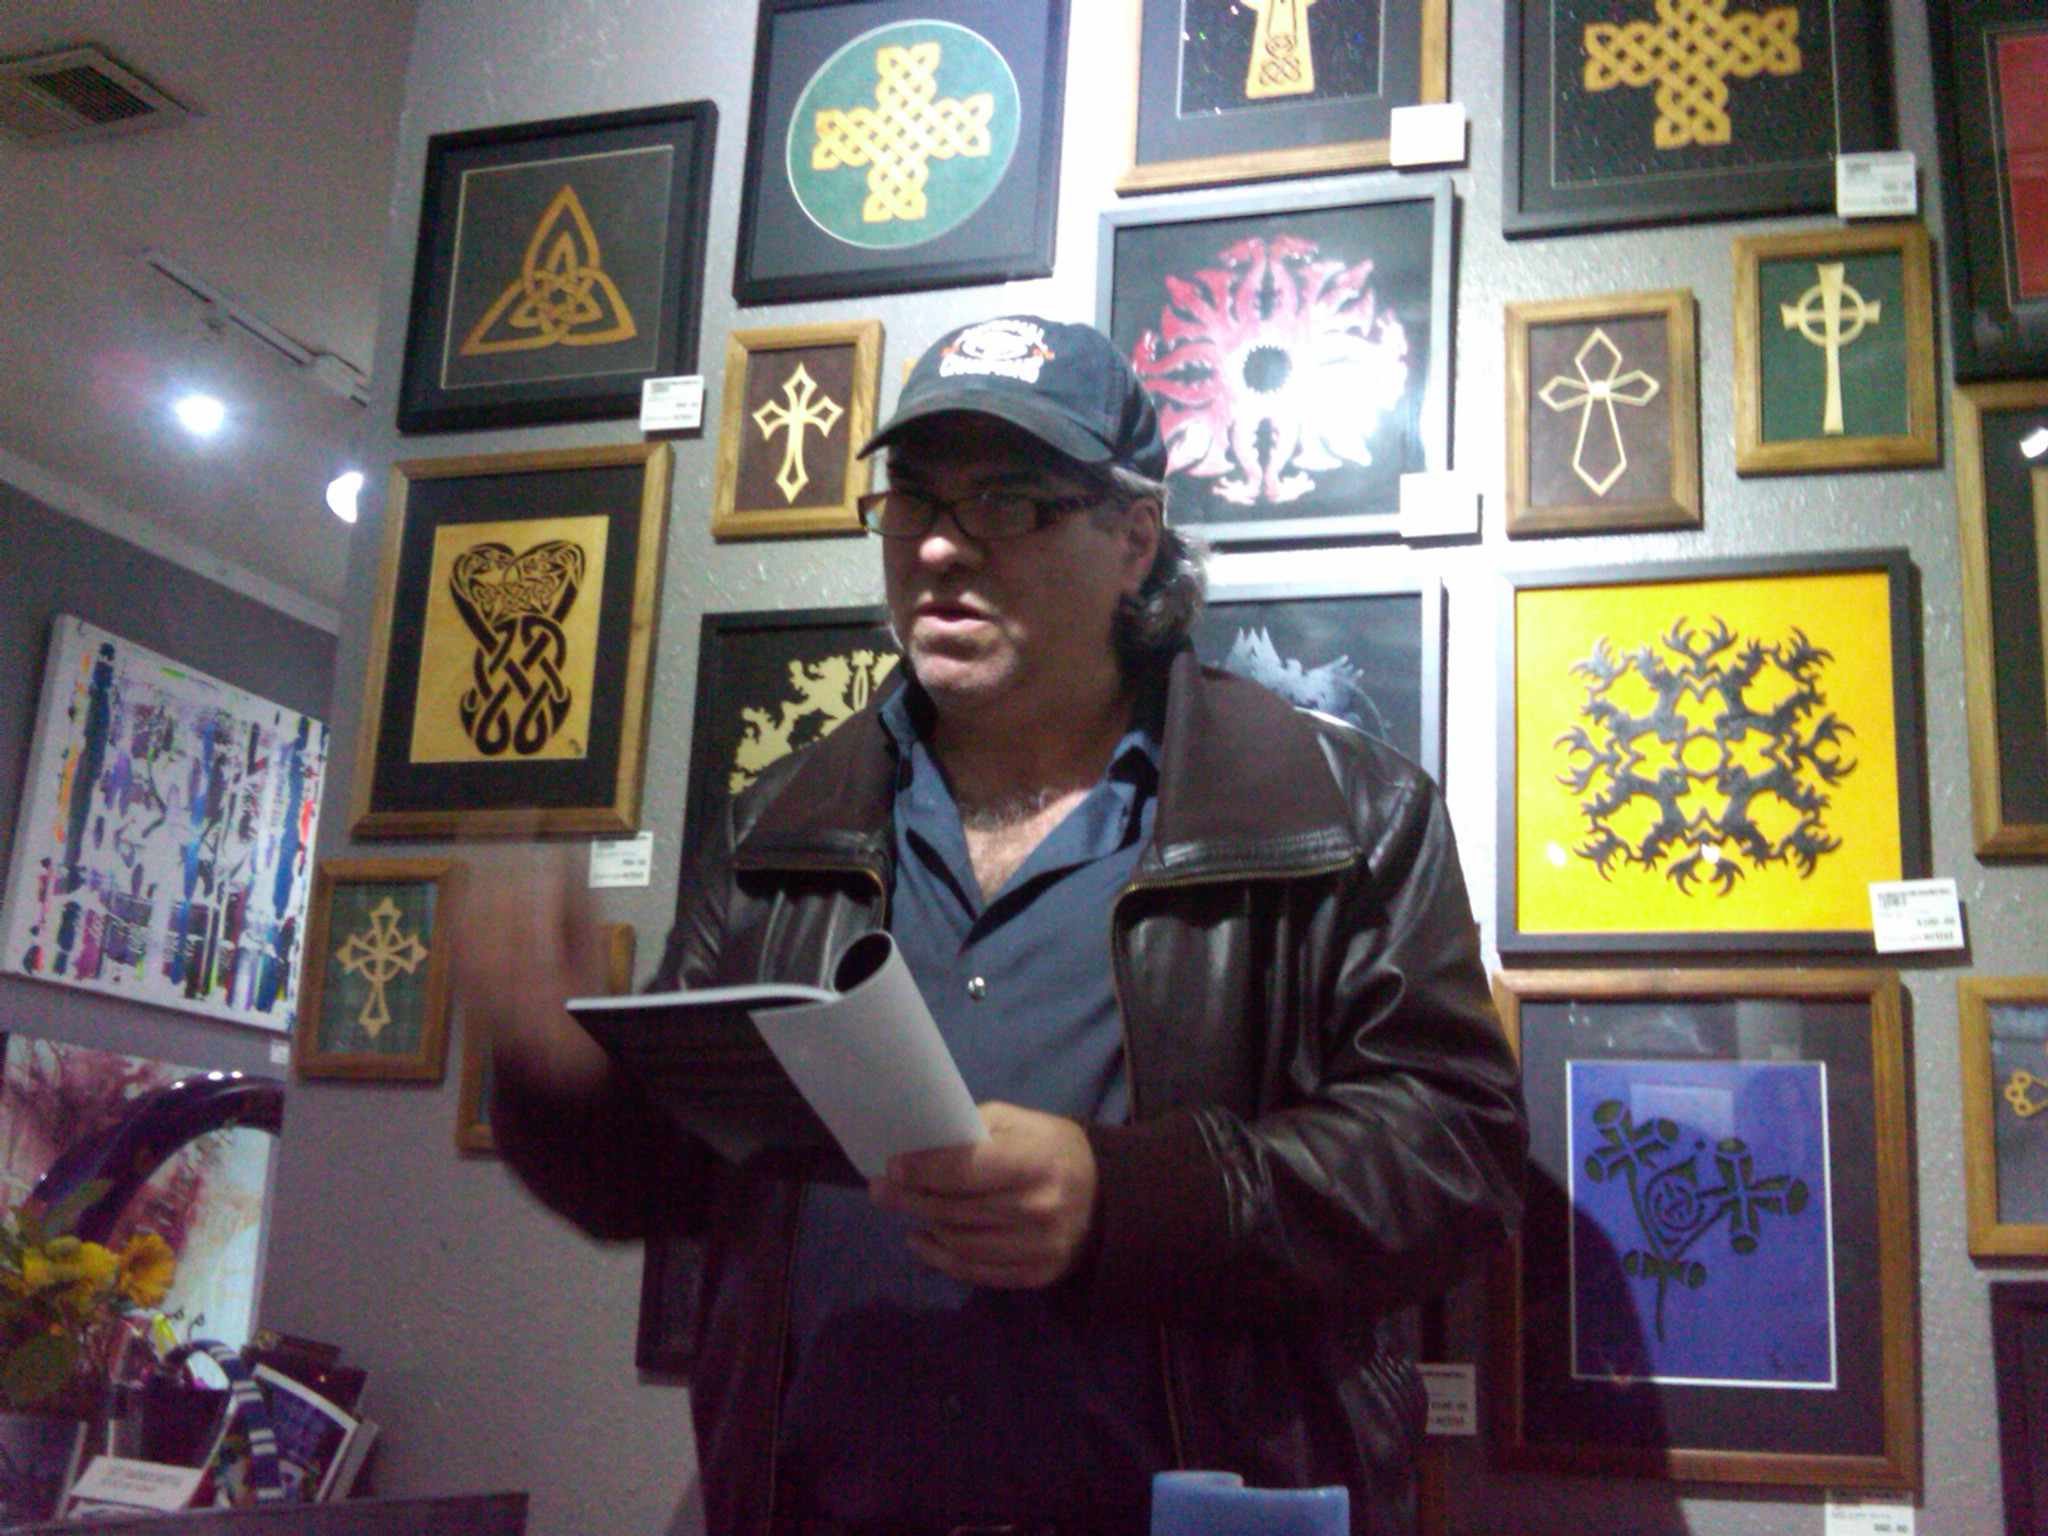 Poet Ken at Starving Artist Gallery Houston Texas, 2014